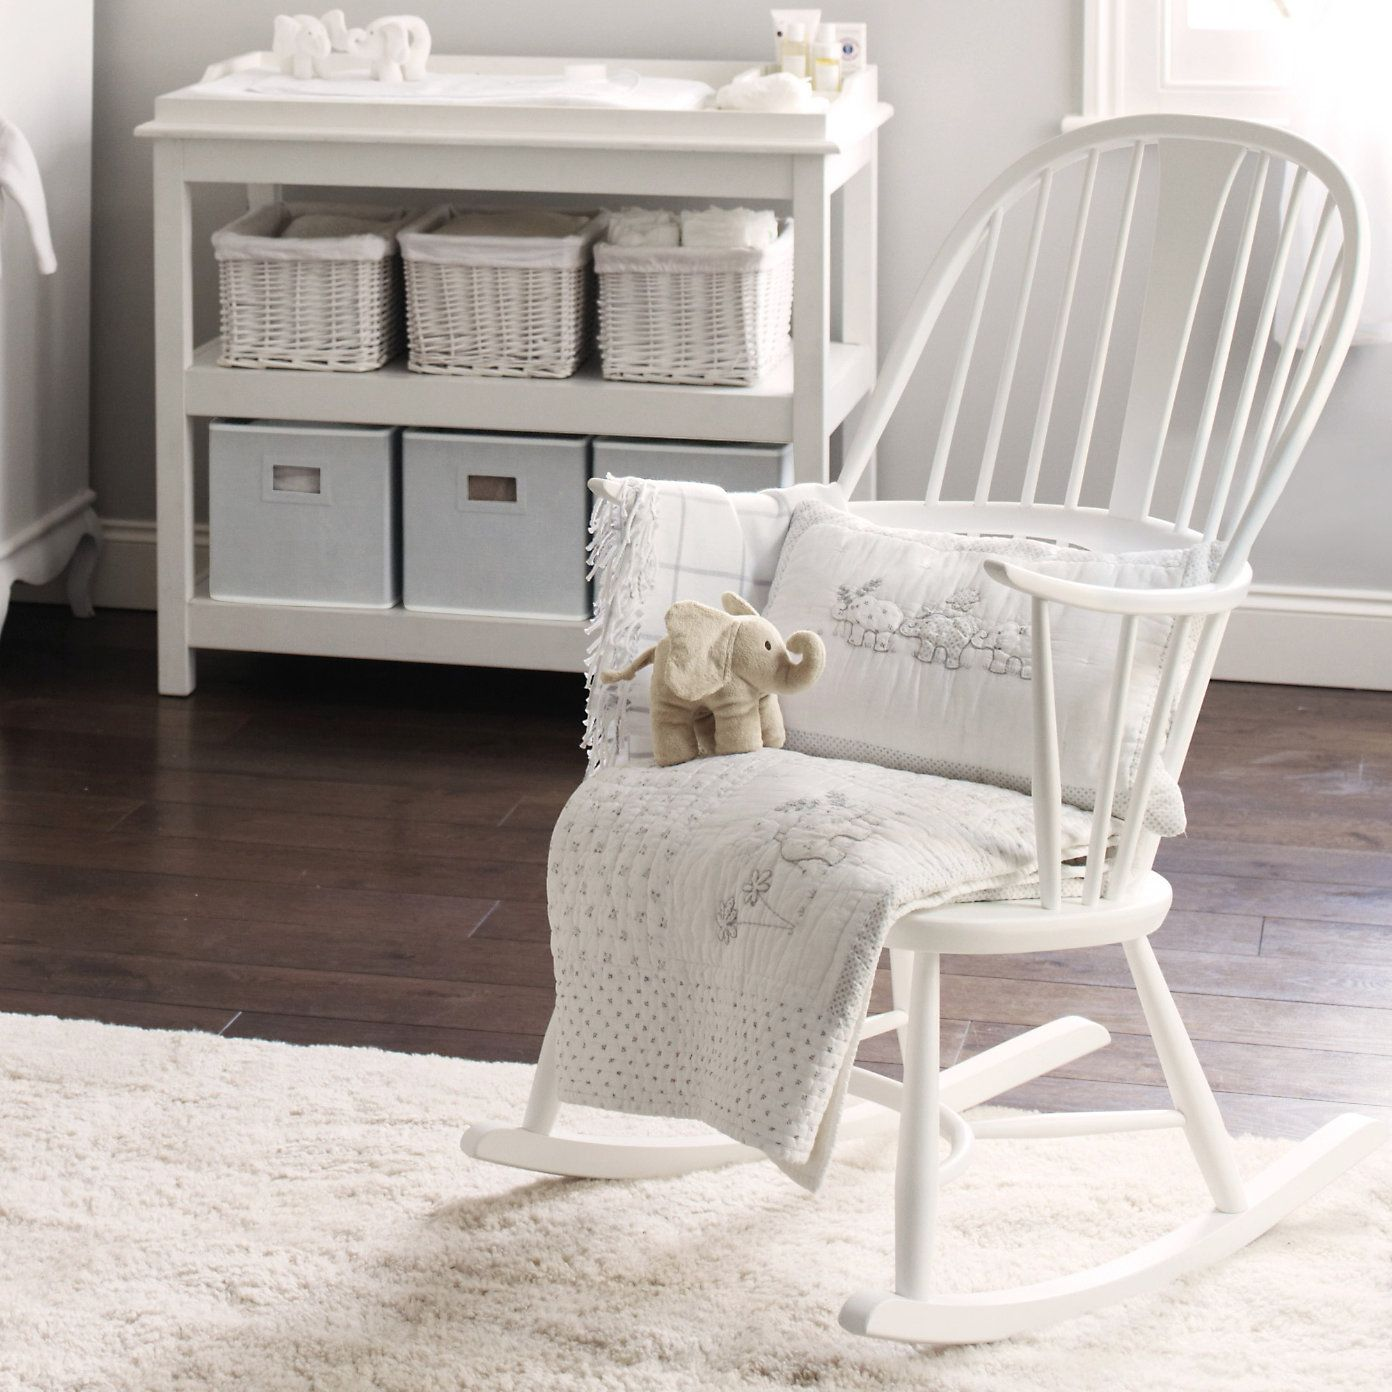 Ercol Rocking Chair Ercol Furniture The White Company